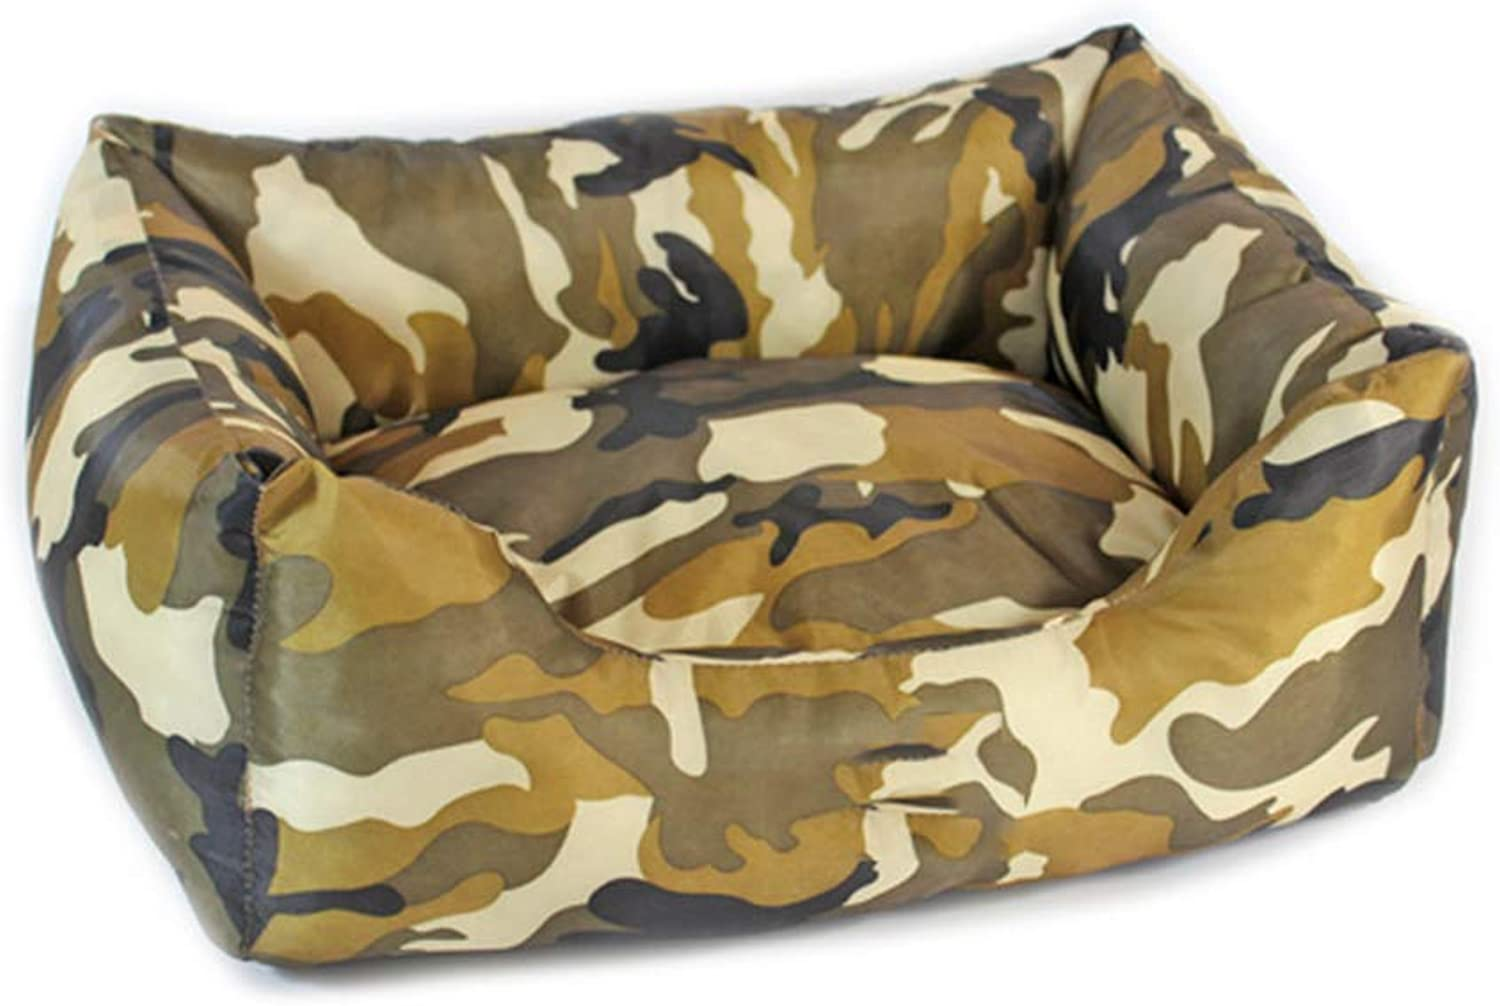 Four Seasons Universal Camouflage Oxford Cloth Pet Nest MultiSize Dog Bed,85  60  22cm